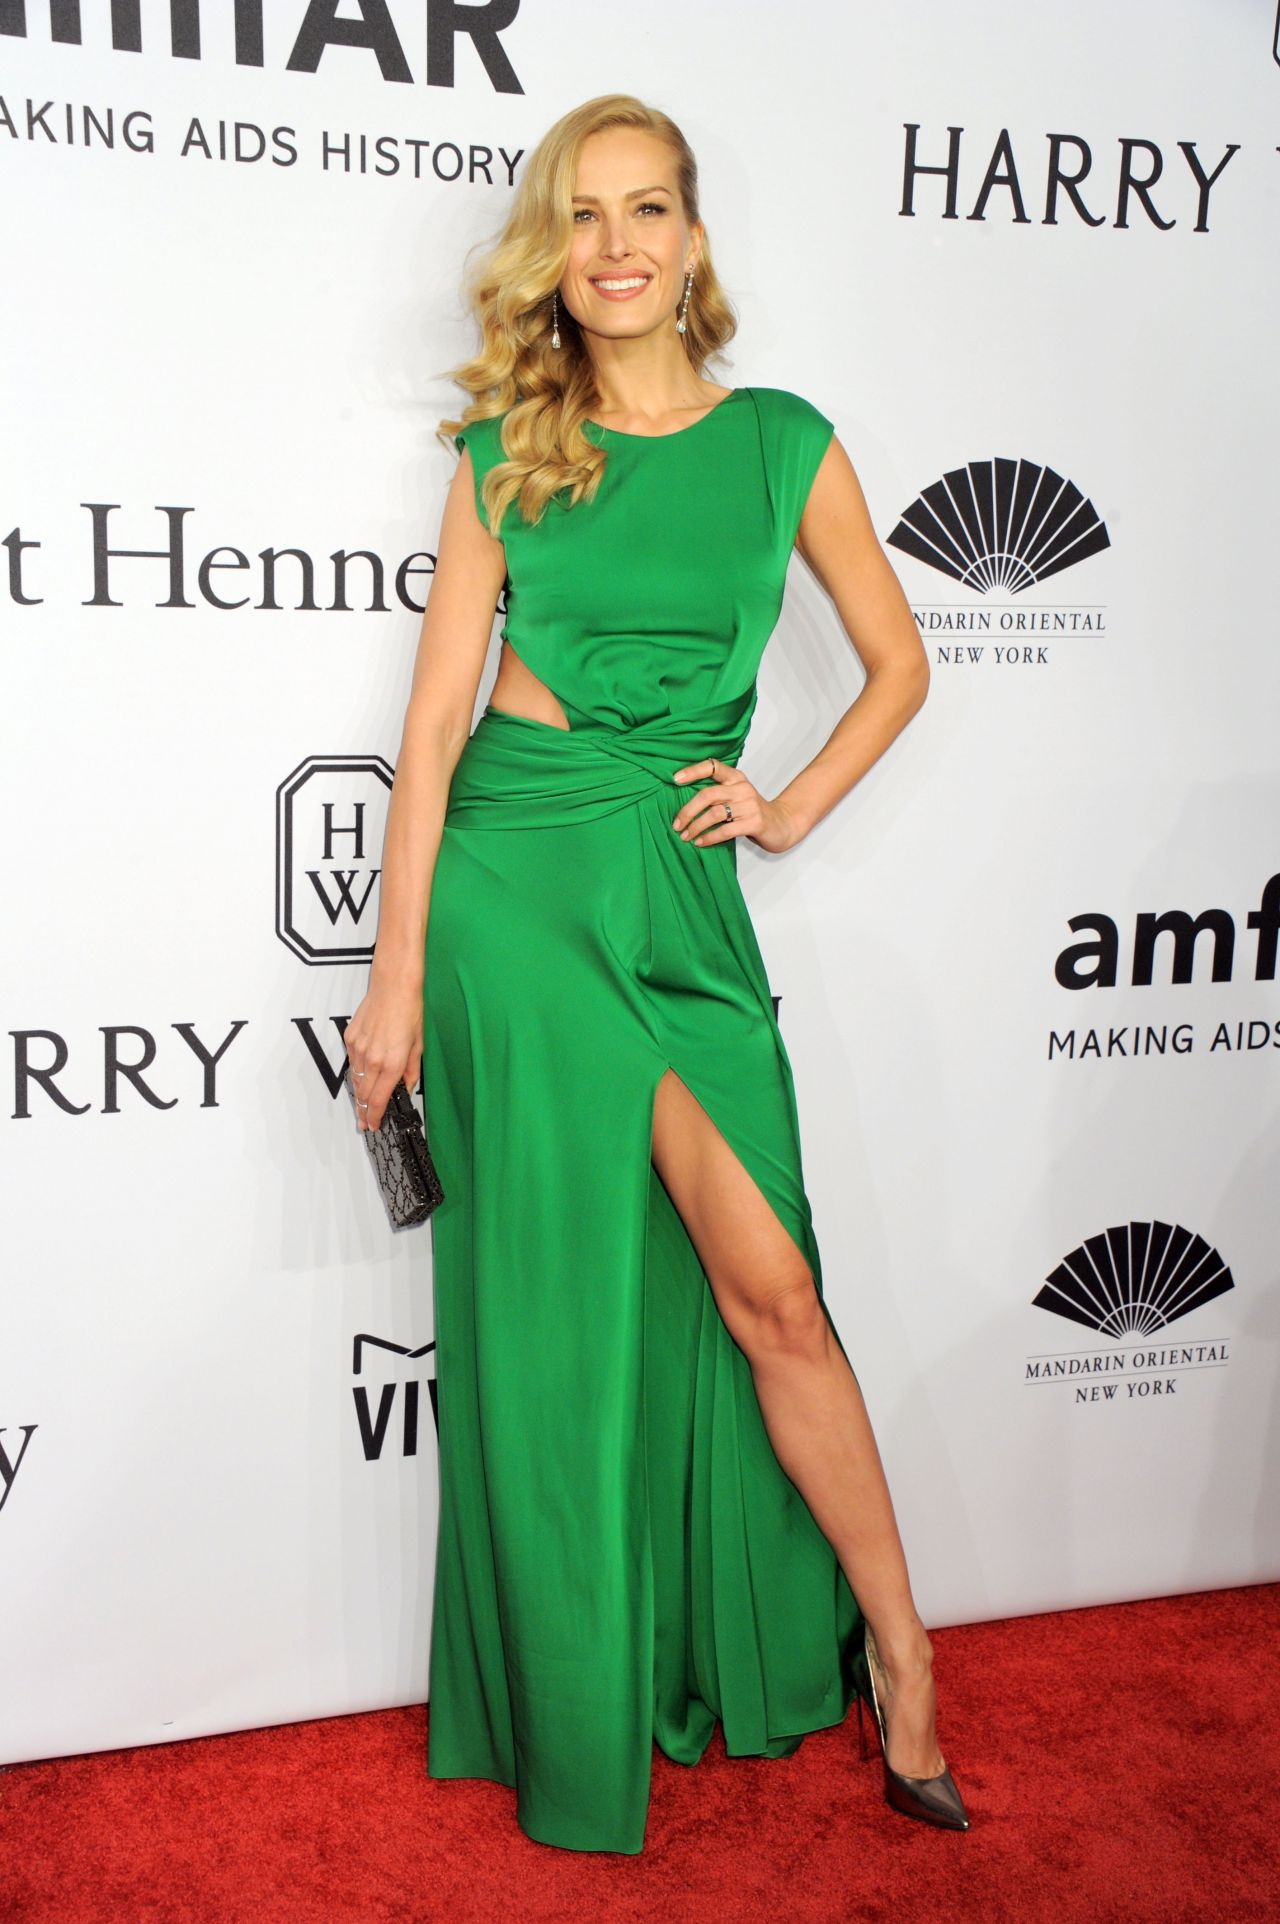 petra-nemcova-2016-amfar-new-york-gala-in-new-york-city-ny-6